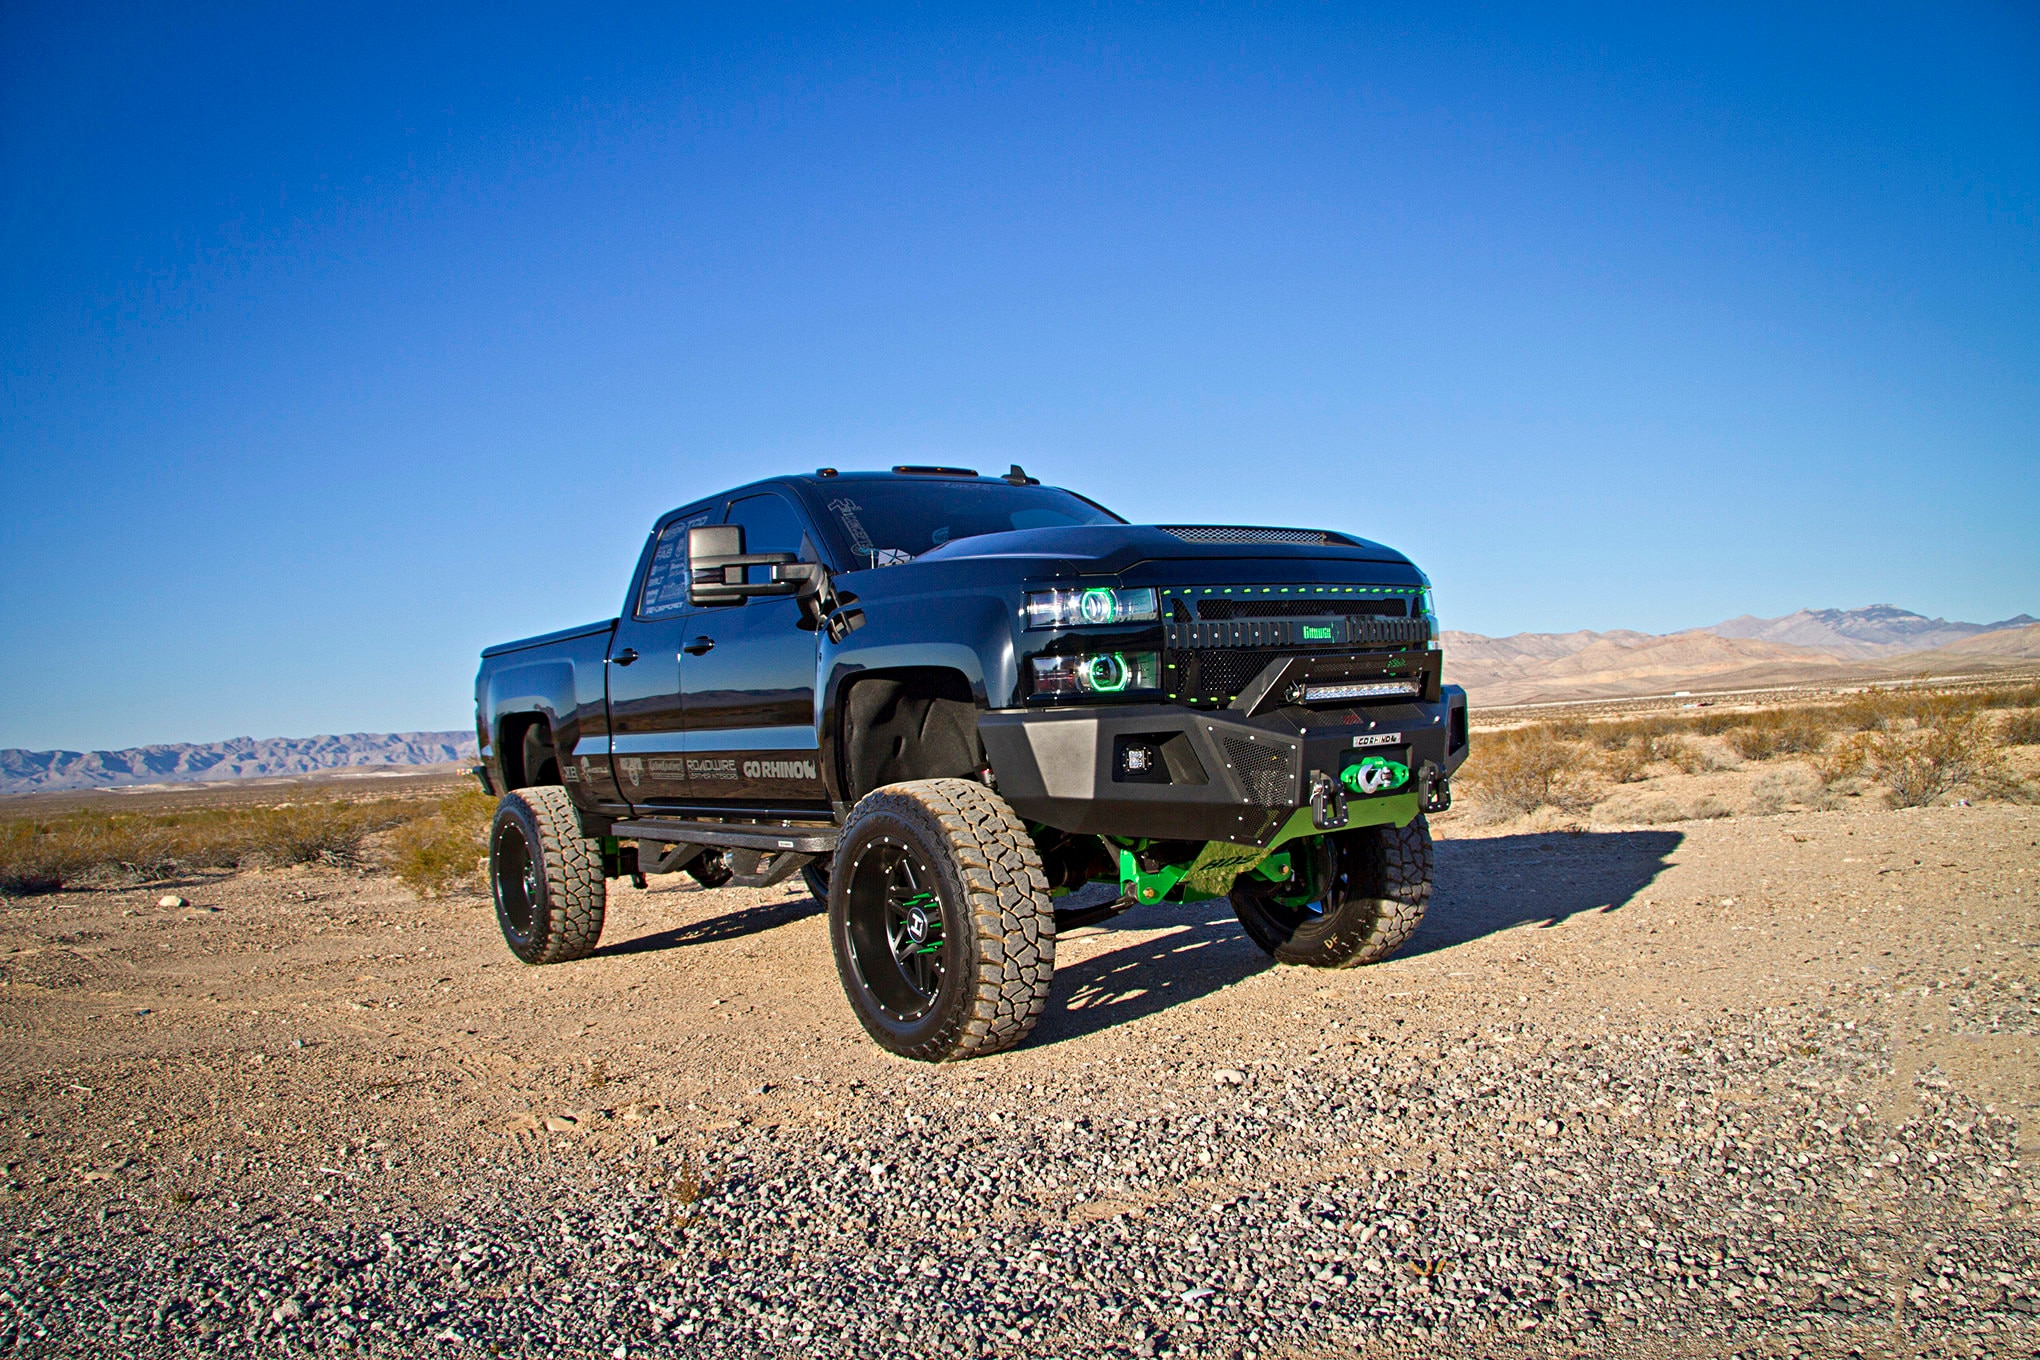 2015 chevy silverado 10 month build 15